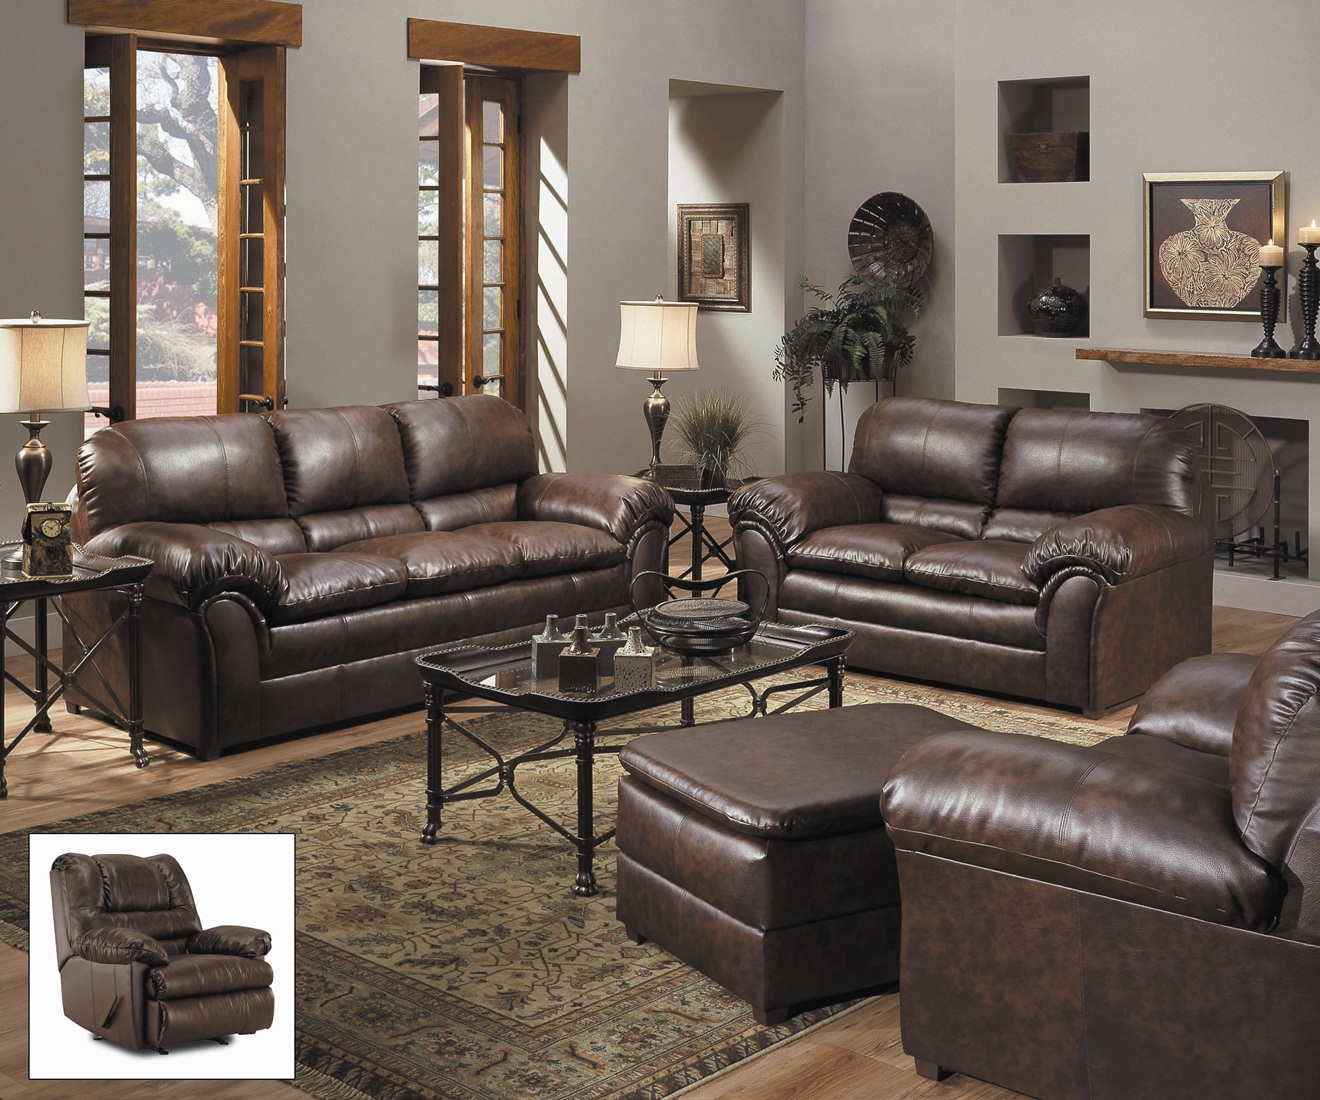 Geneva classic brown bonded leather living room furniture for Leather living room sets